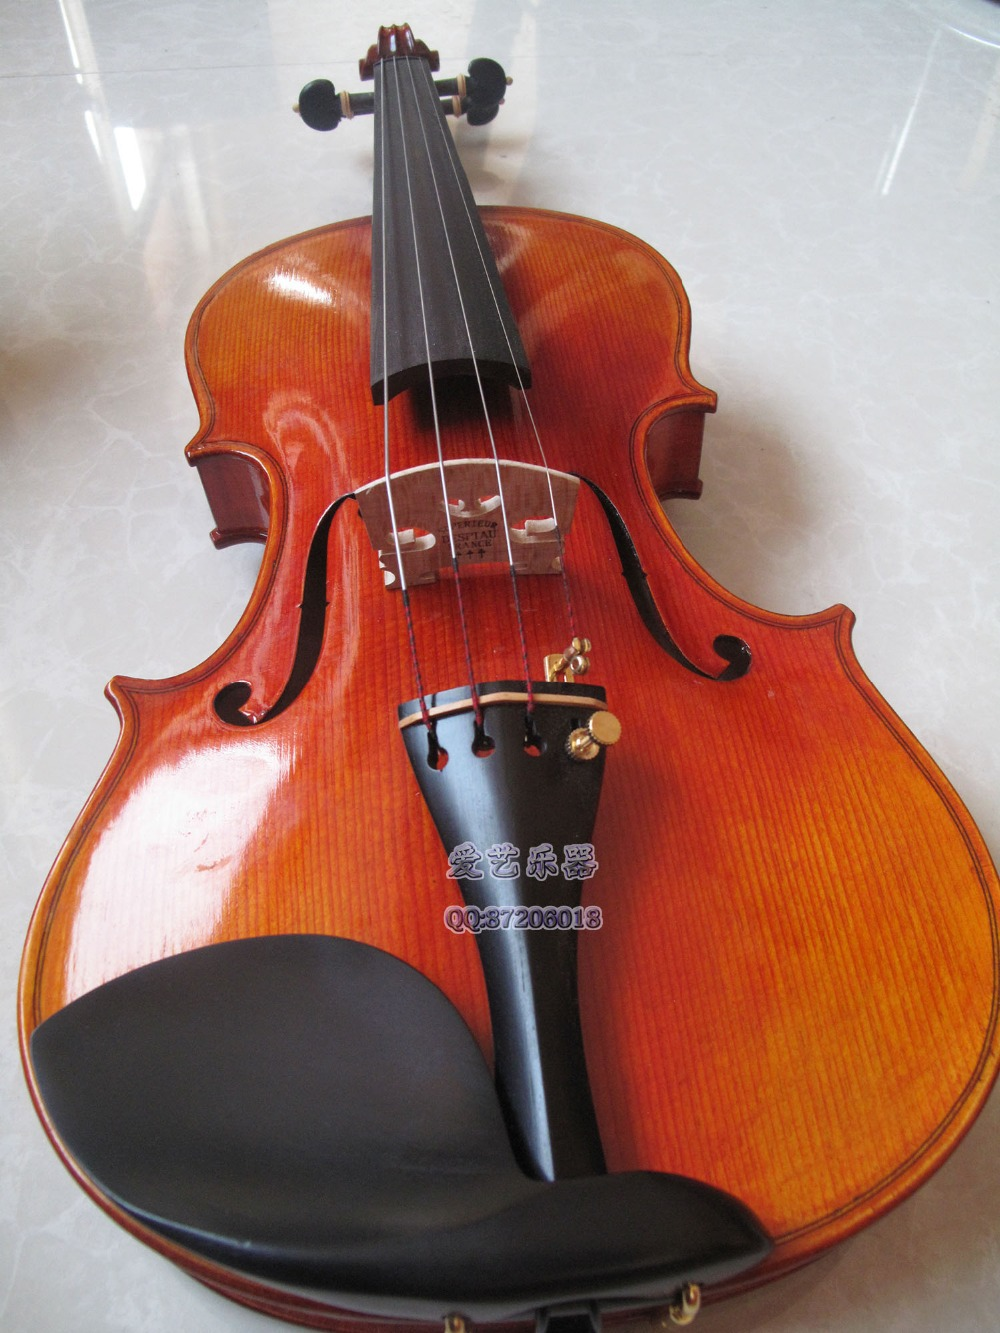 Wholesale, retail, high-end handmade, 4/473/41/21/41/8 Violin